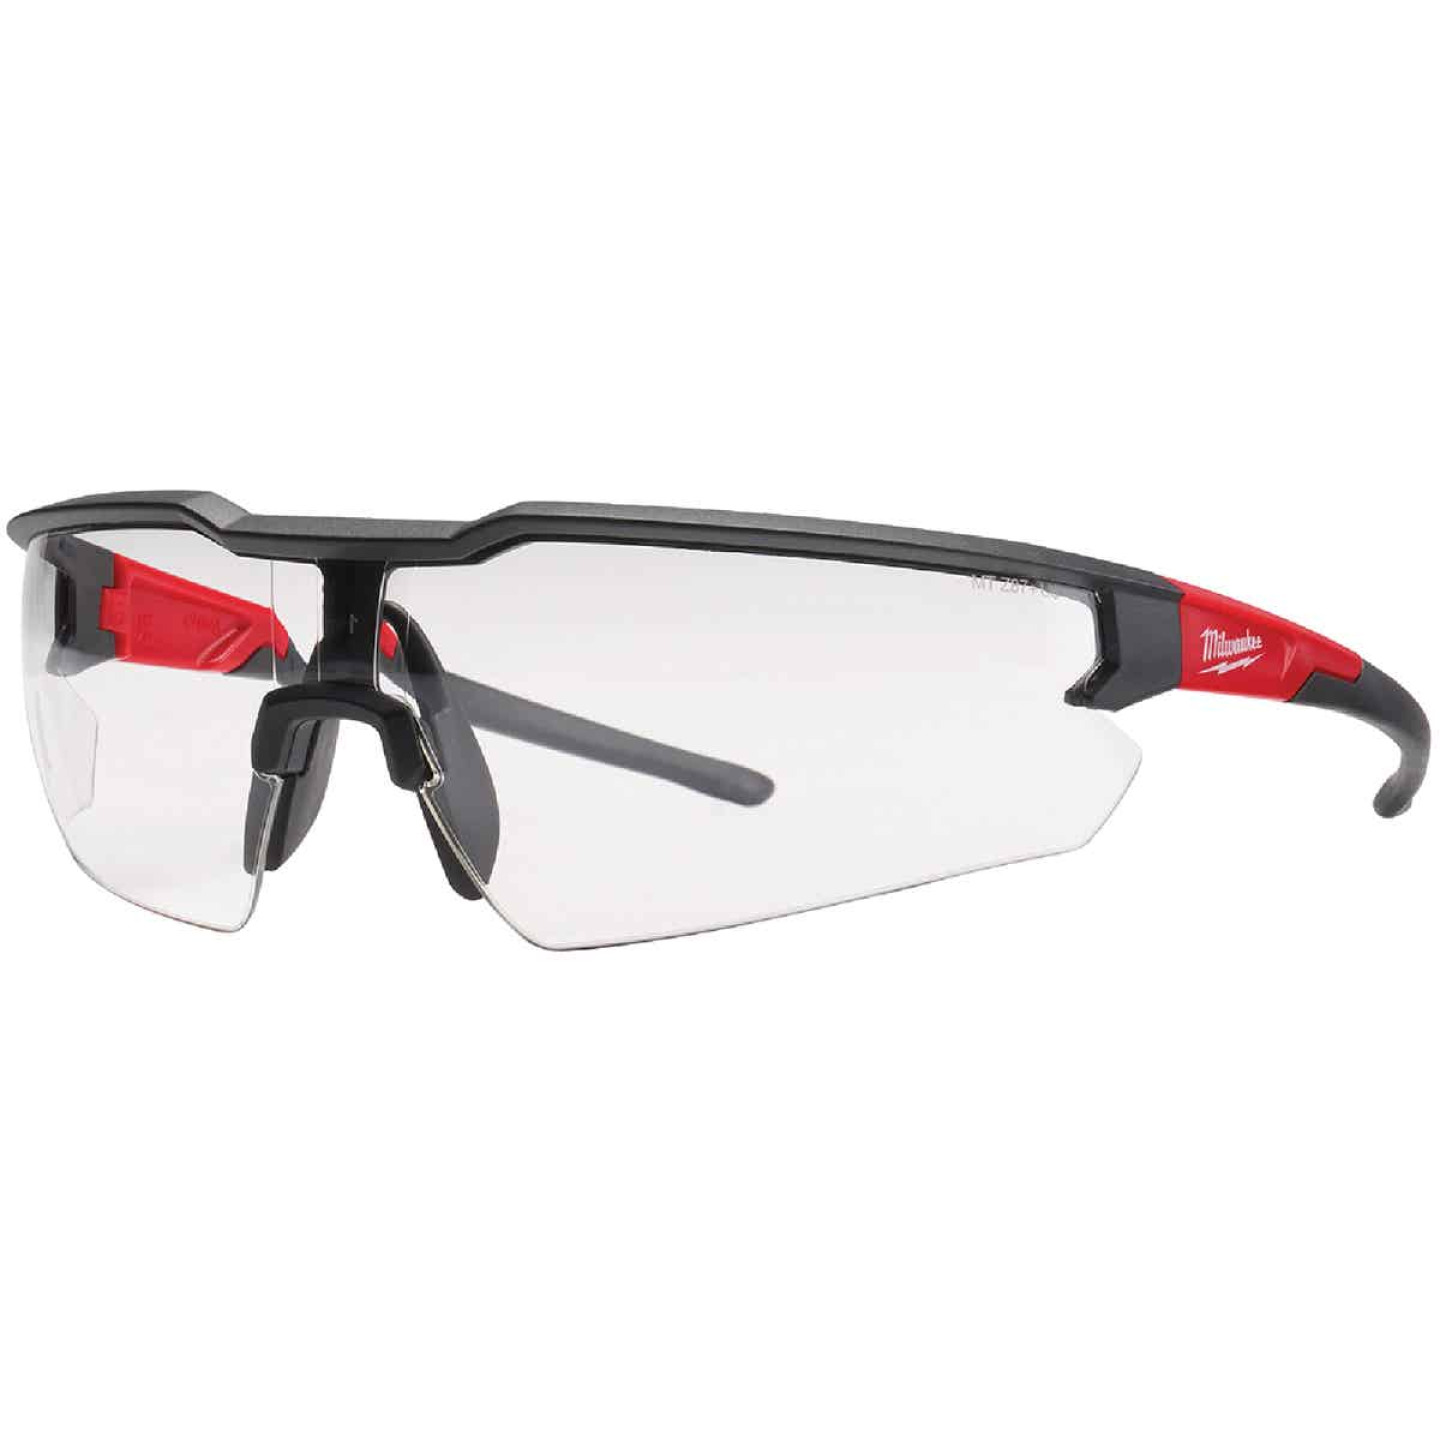 Milwaukee Red & Black Frame Safety Glasses with Clear Fog-Free Lenses Image 1